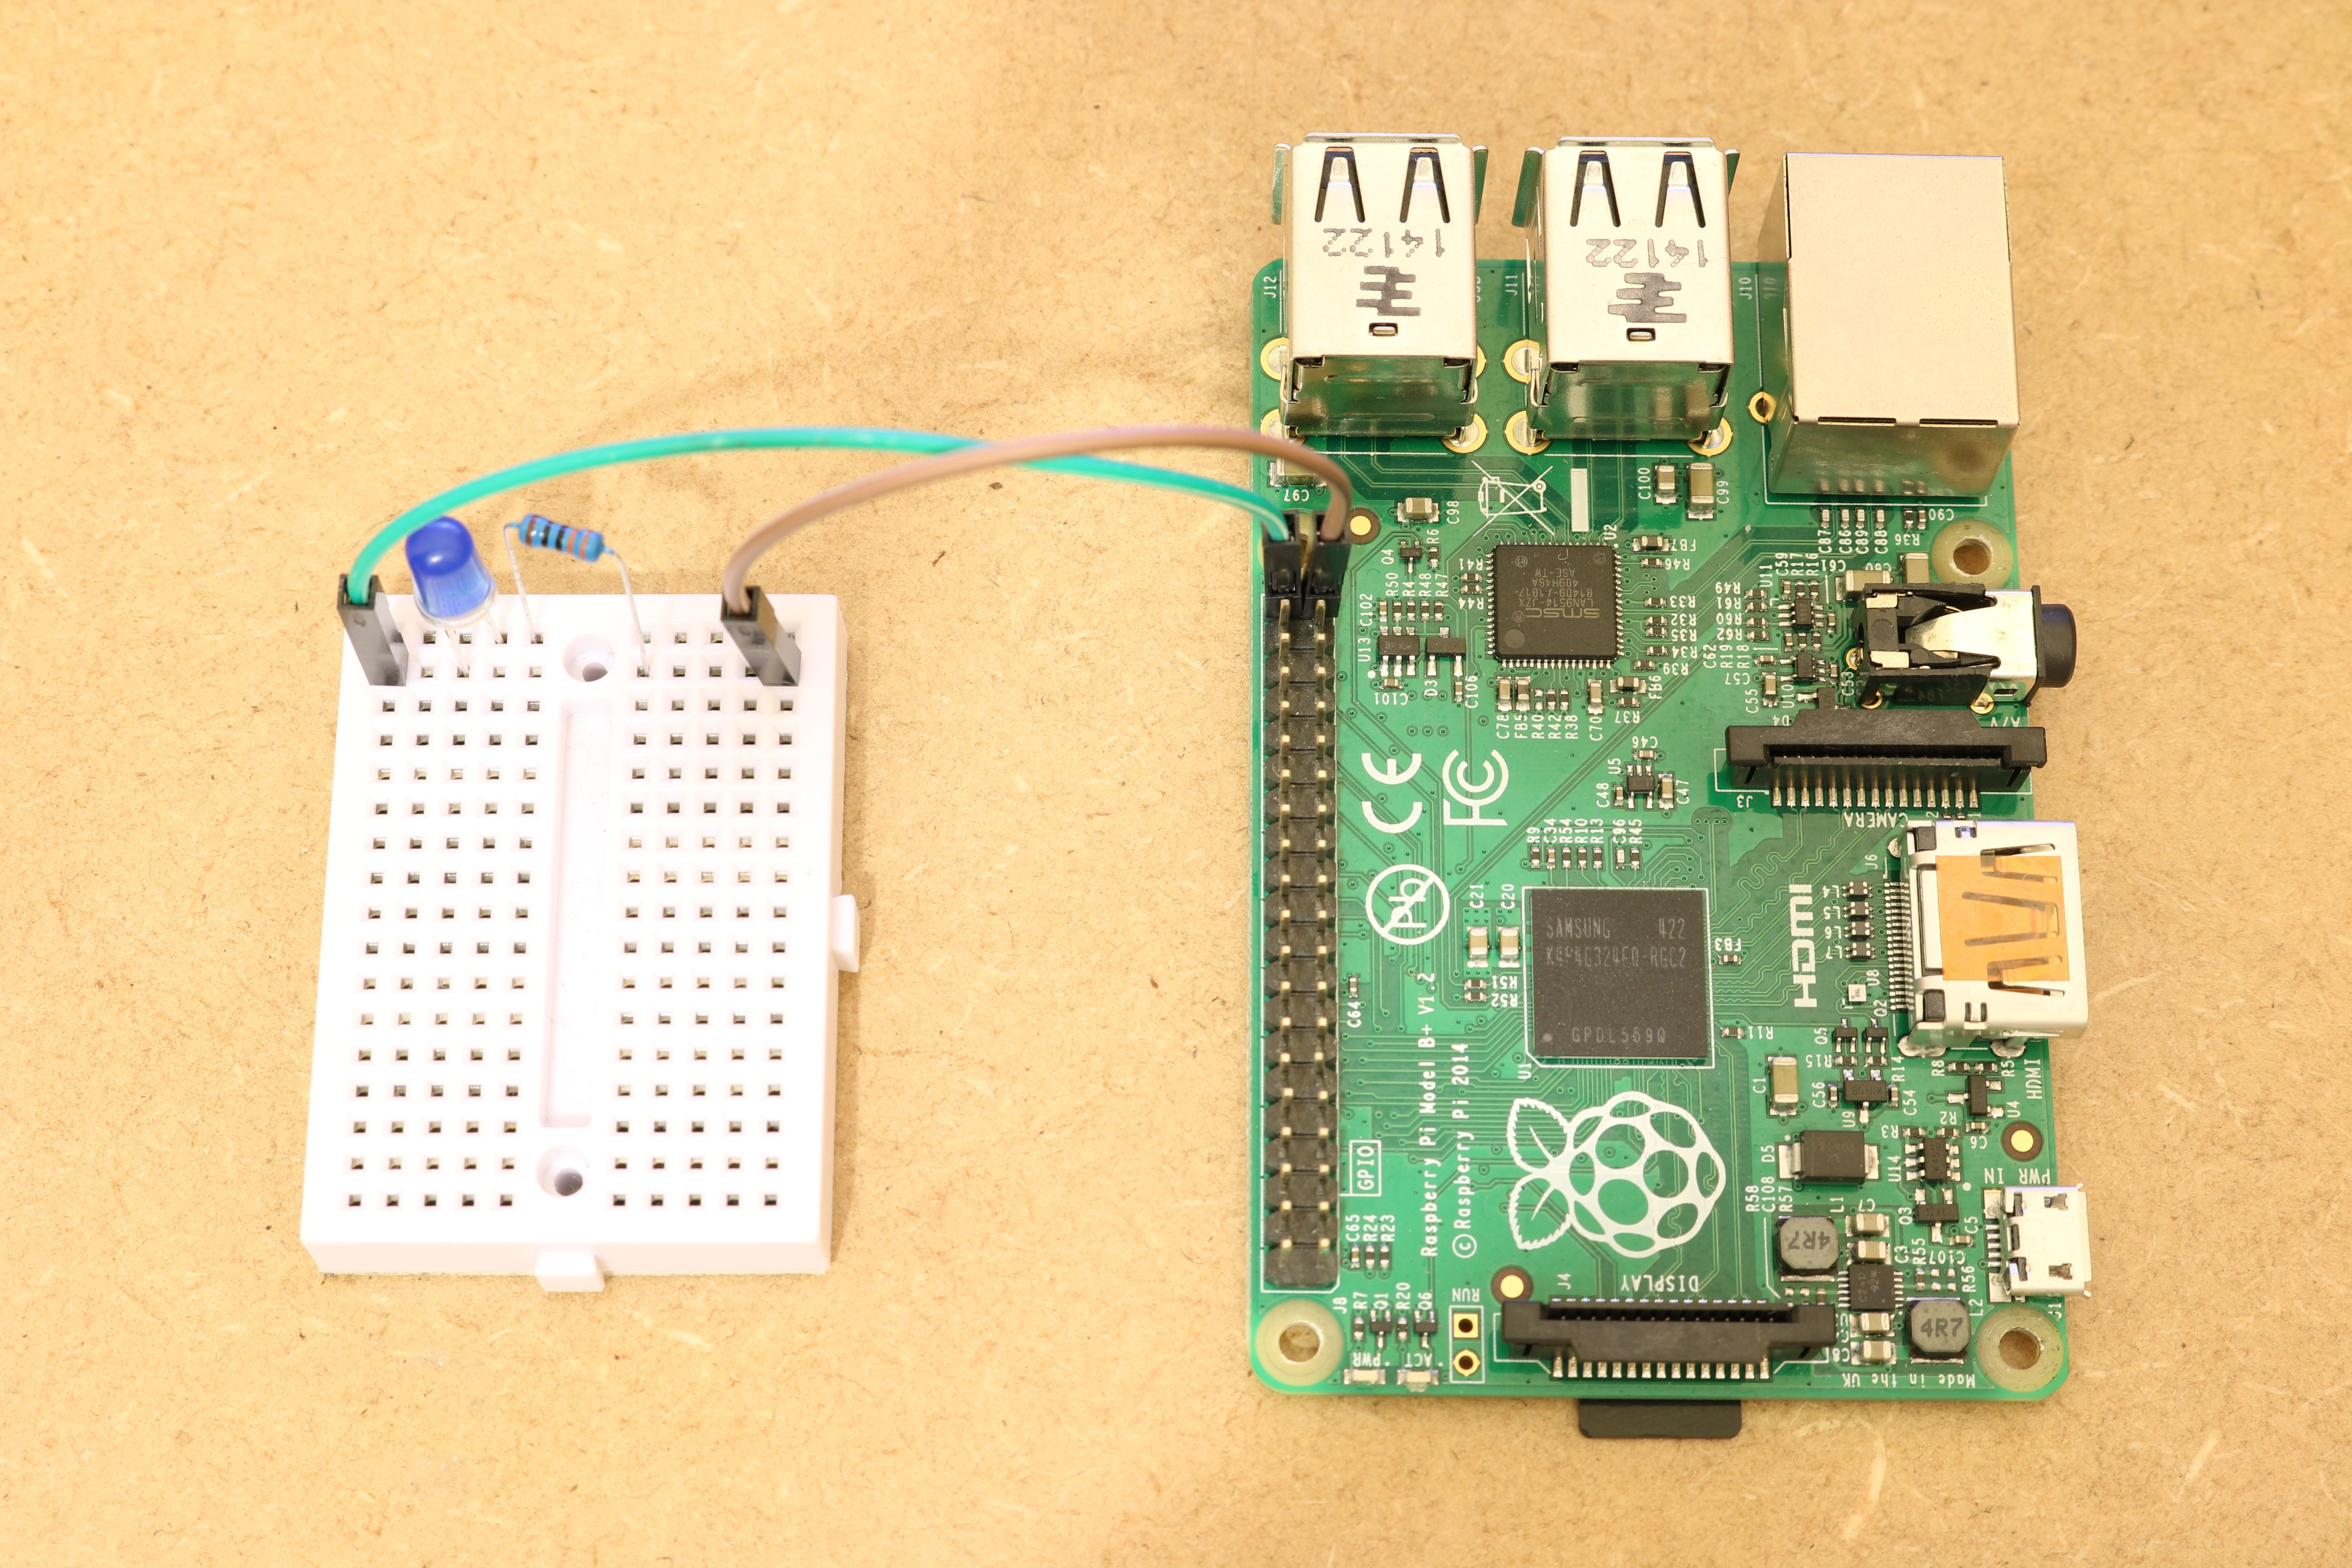 Full circuit with LED and resistor fitted on Raspberry Pi's GPIO